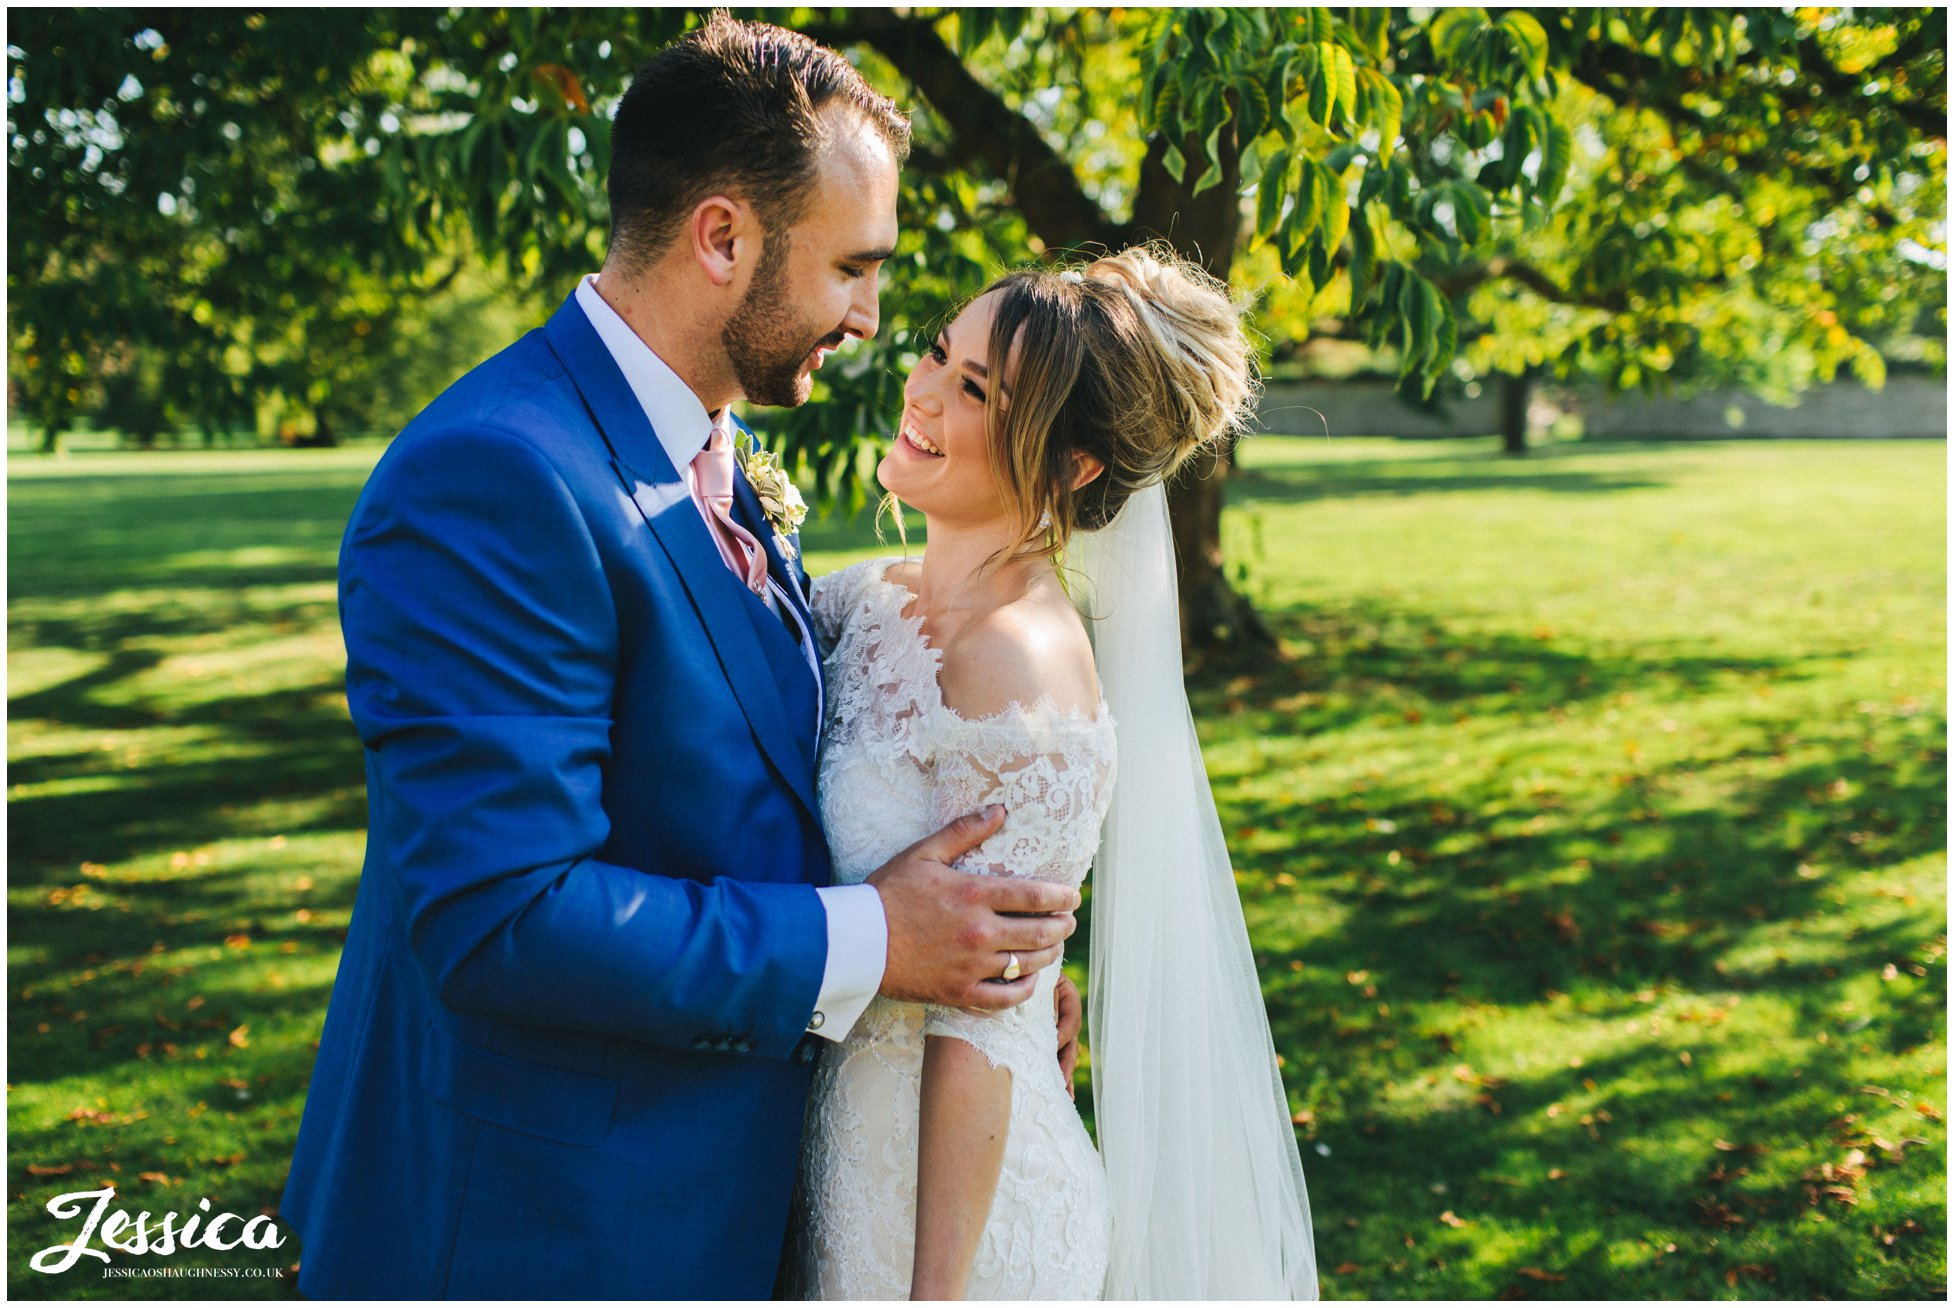 husband and wife laugh together in the venue's grounds